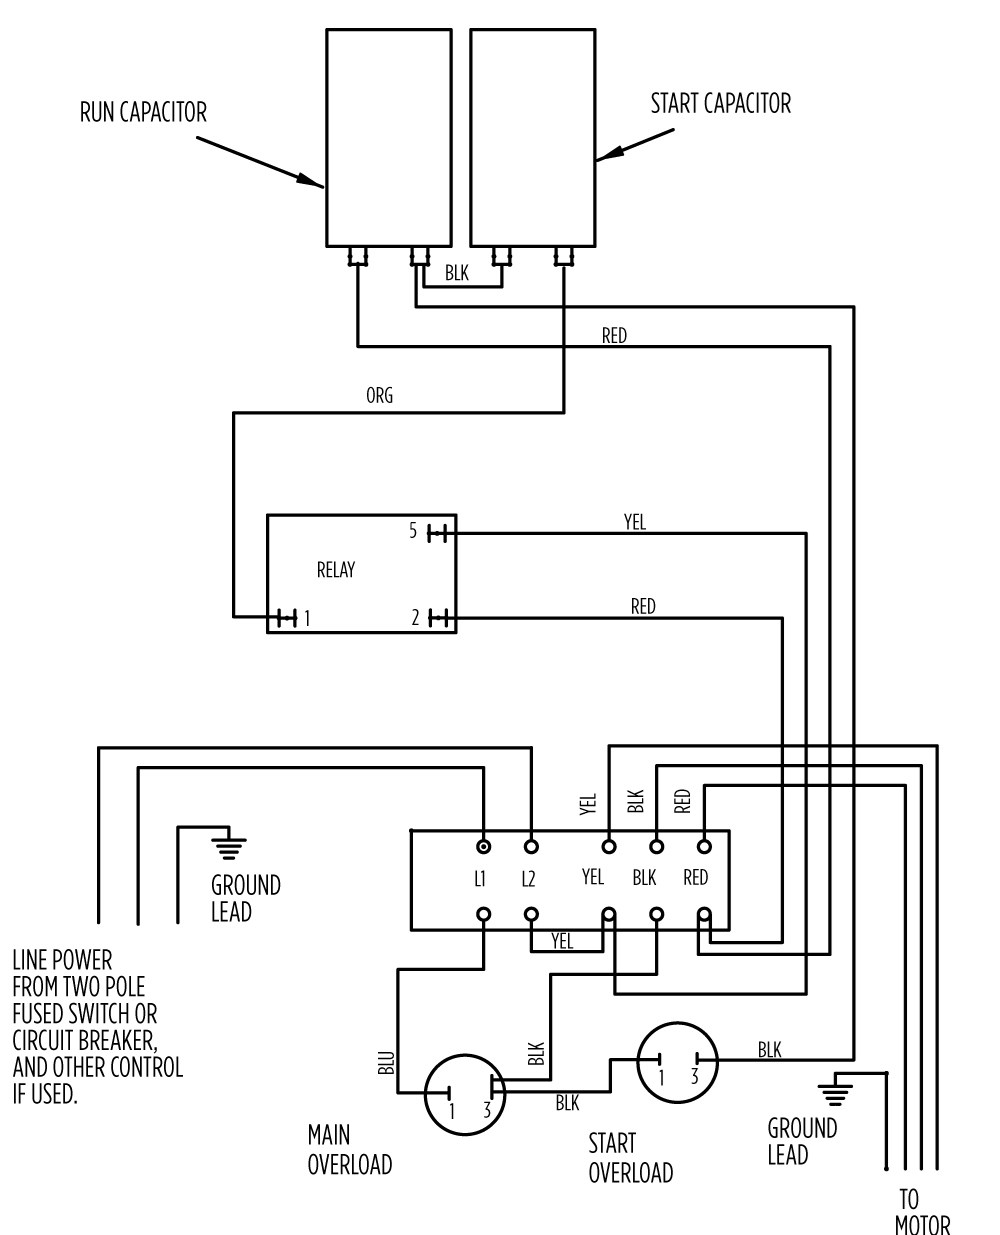 2 hp standard 282 301 8110_aim gallery?format=jpg&quality=80 aim manual page 55 single phase motors and controls motor north american electric motor wiring diagram at mr168.co